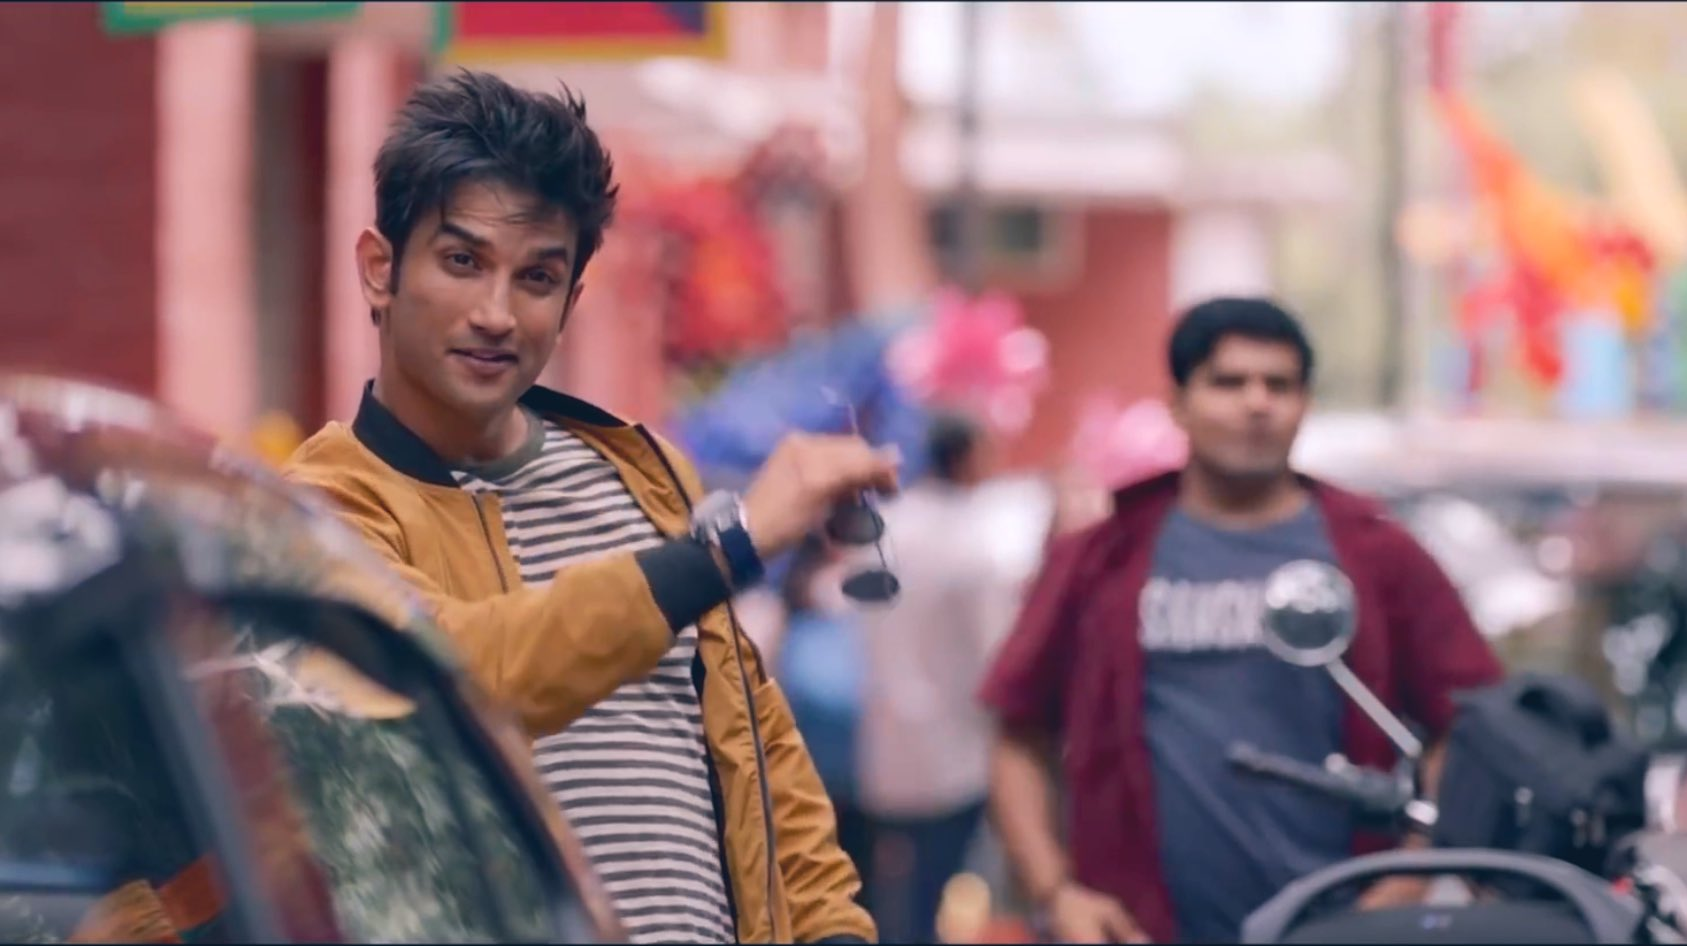 The late actor Sushant Singh Rajput in his last movie Dil Bechara. Screengrab from trailer.